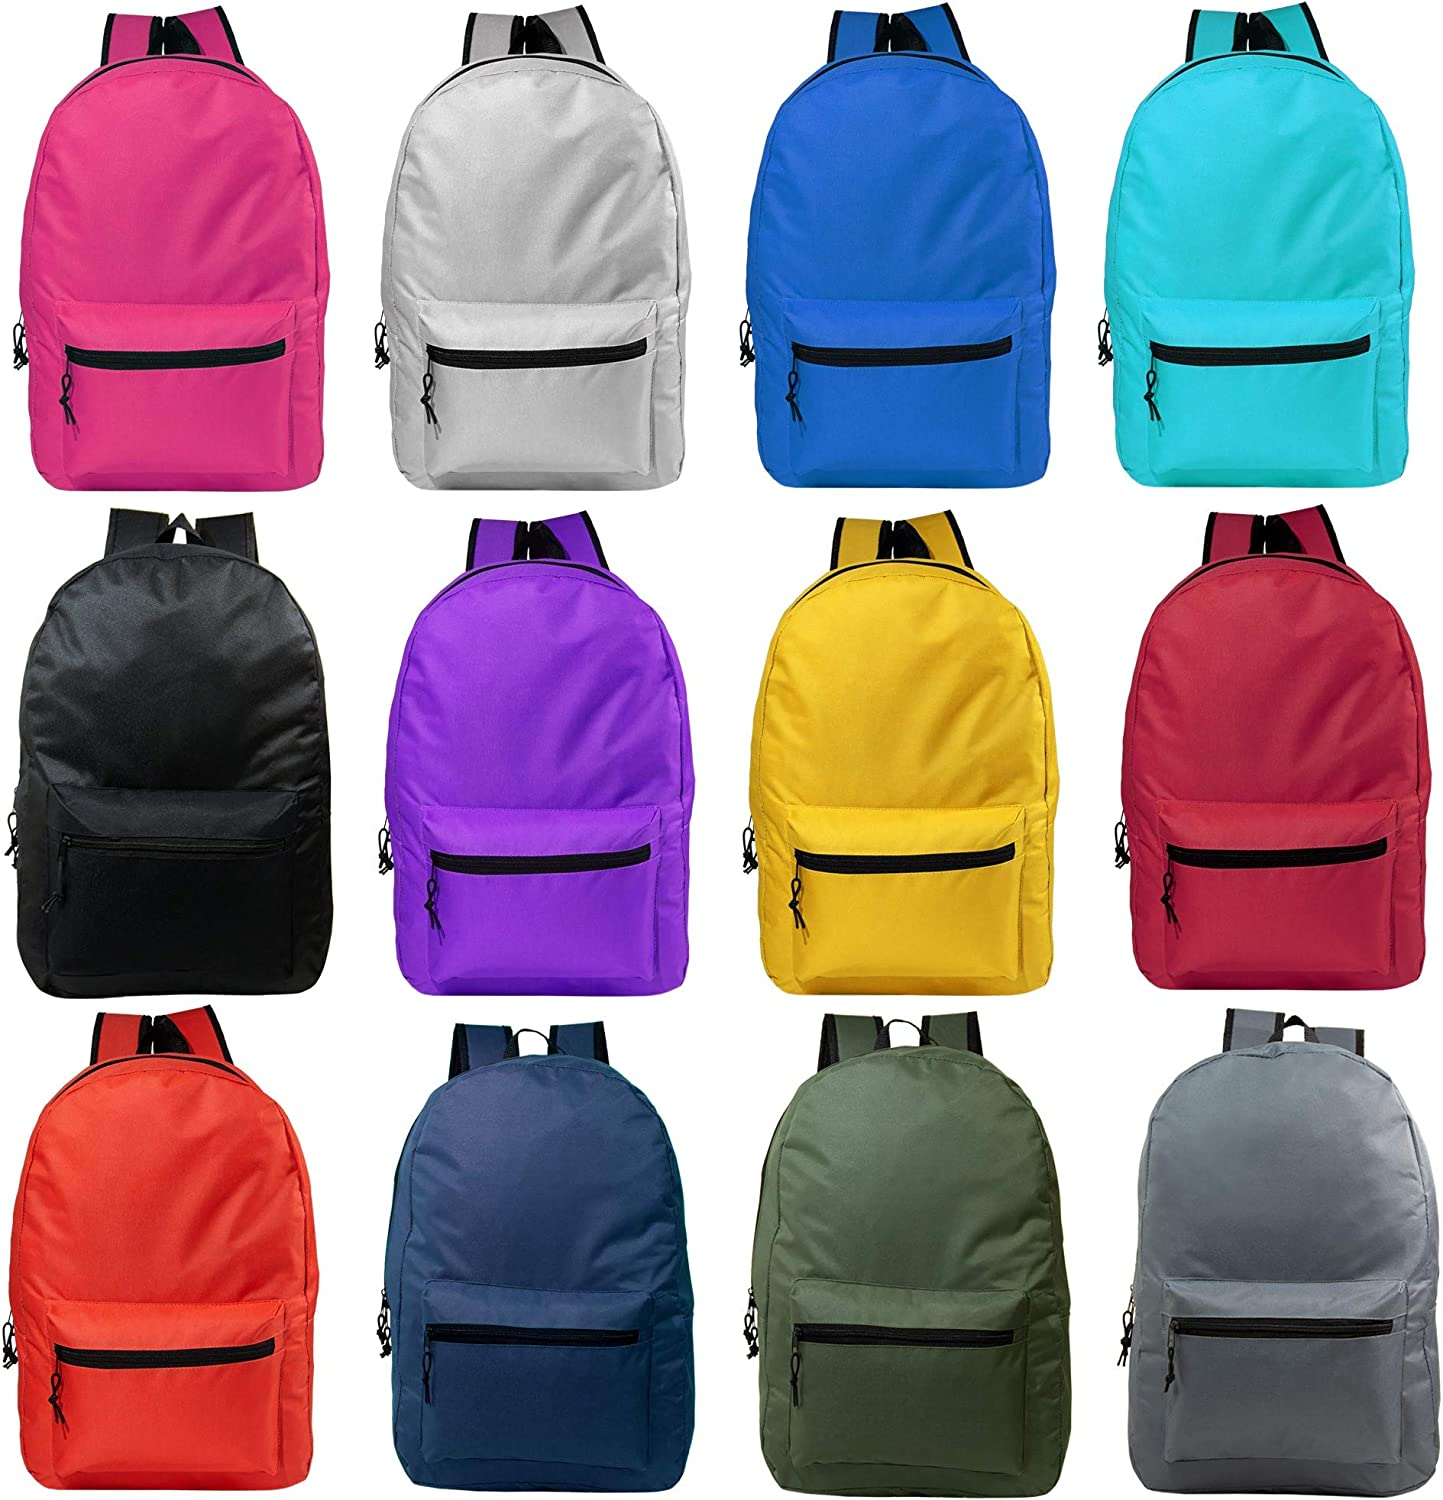 24 Pack - Classic 15 Inch Basic Wholesale Backpacks in Black or Assorted Colors - Bulk Case of Bookbags